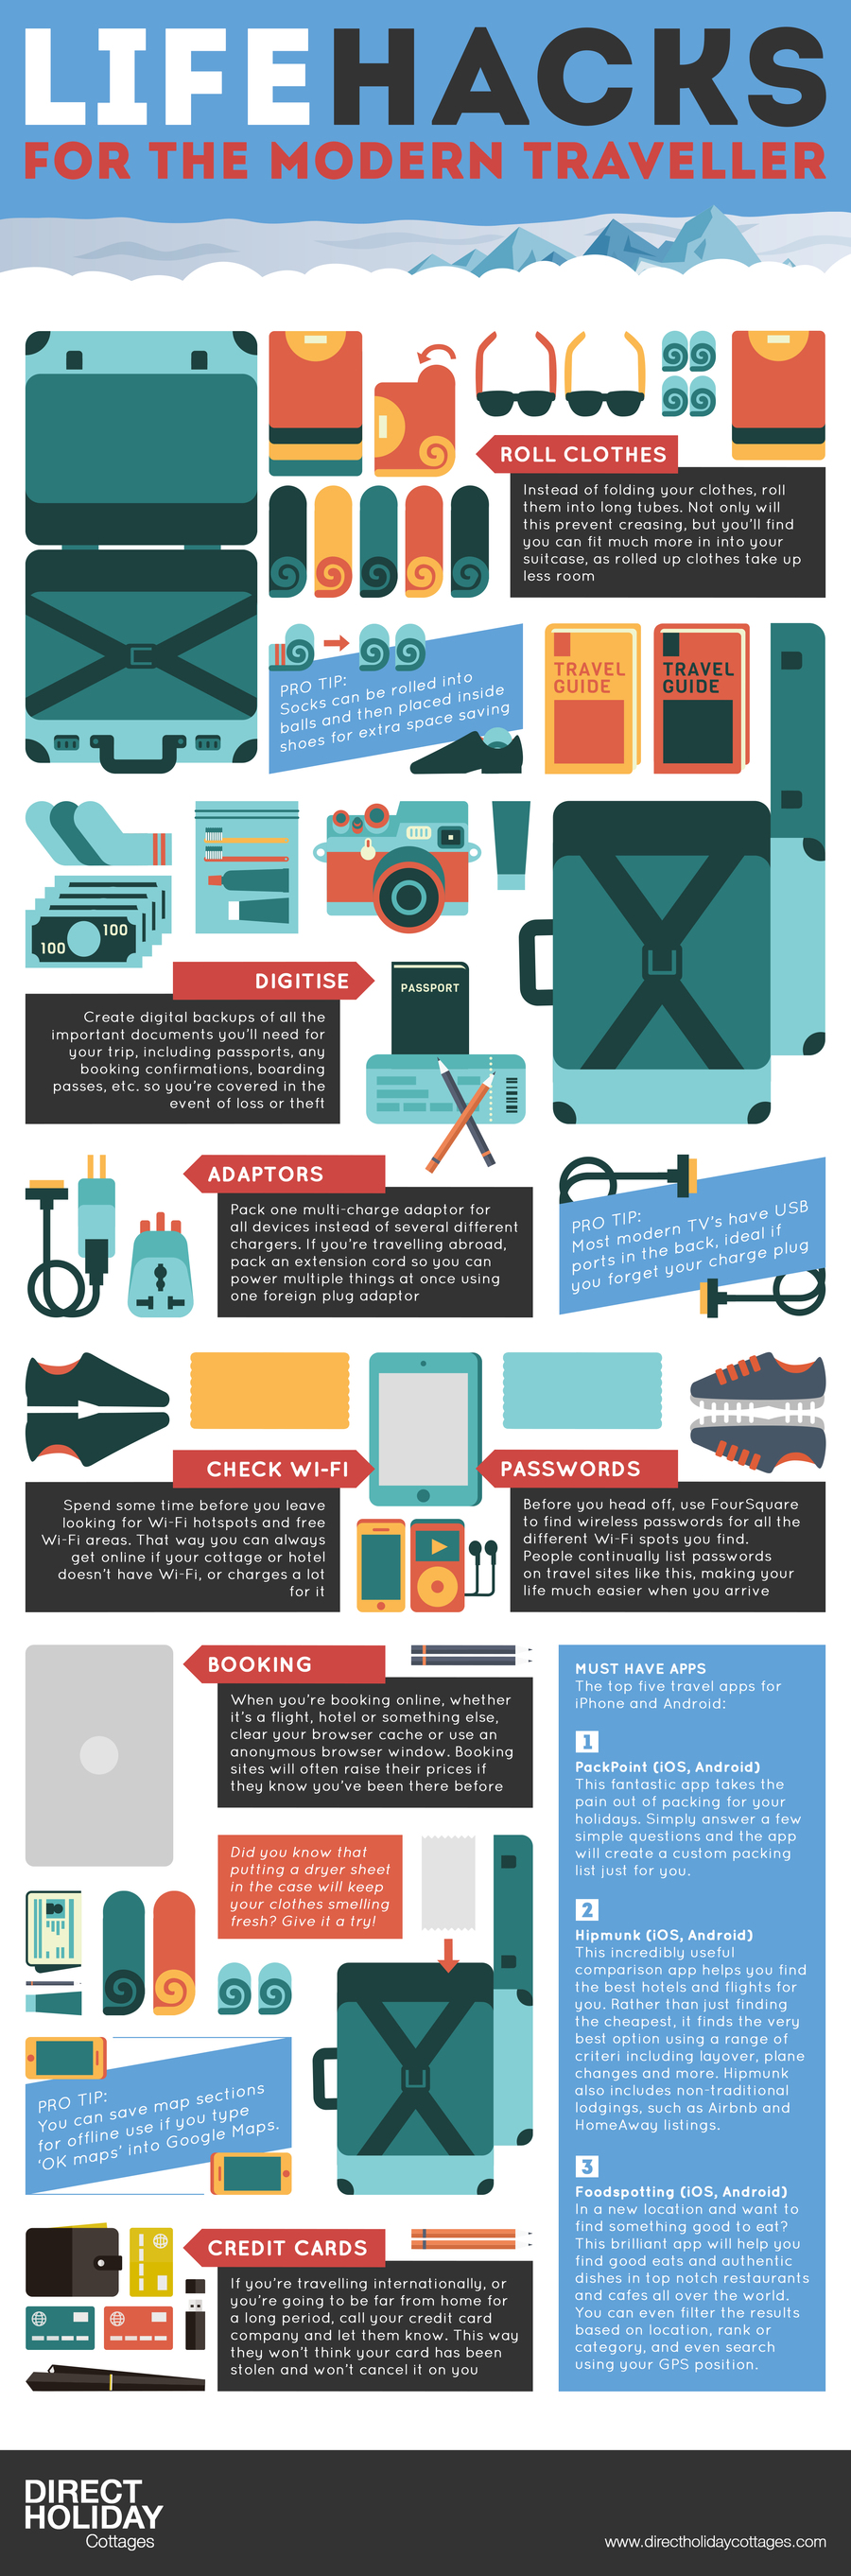 Life Hacks for the Modern Traveller (Infographic)